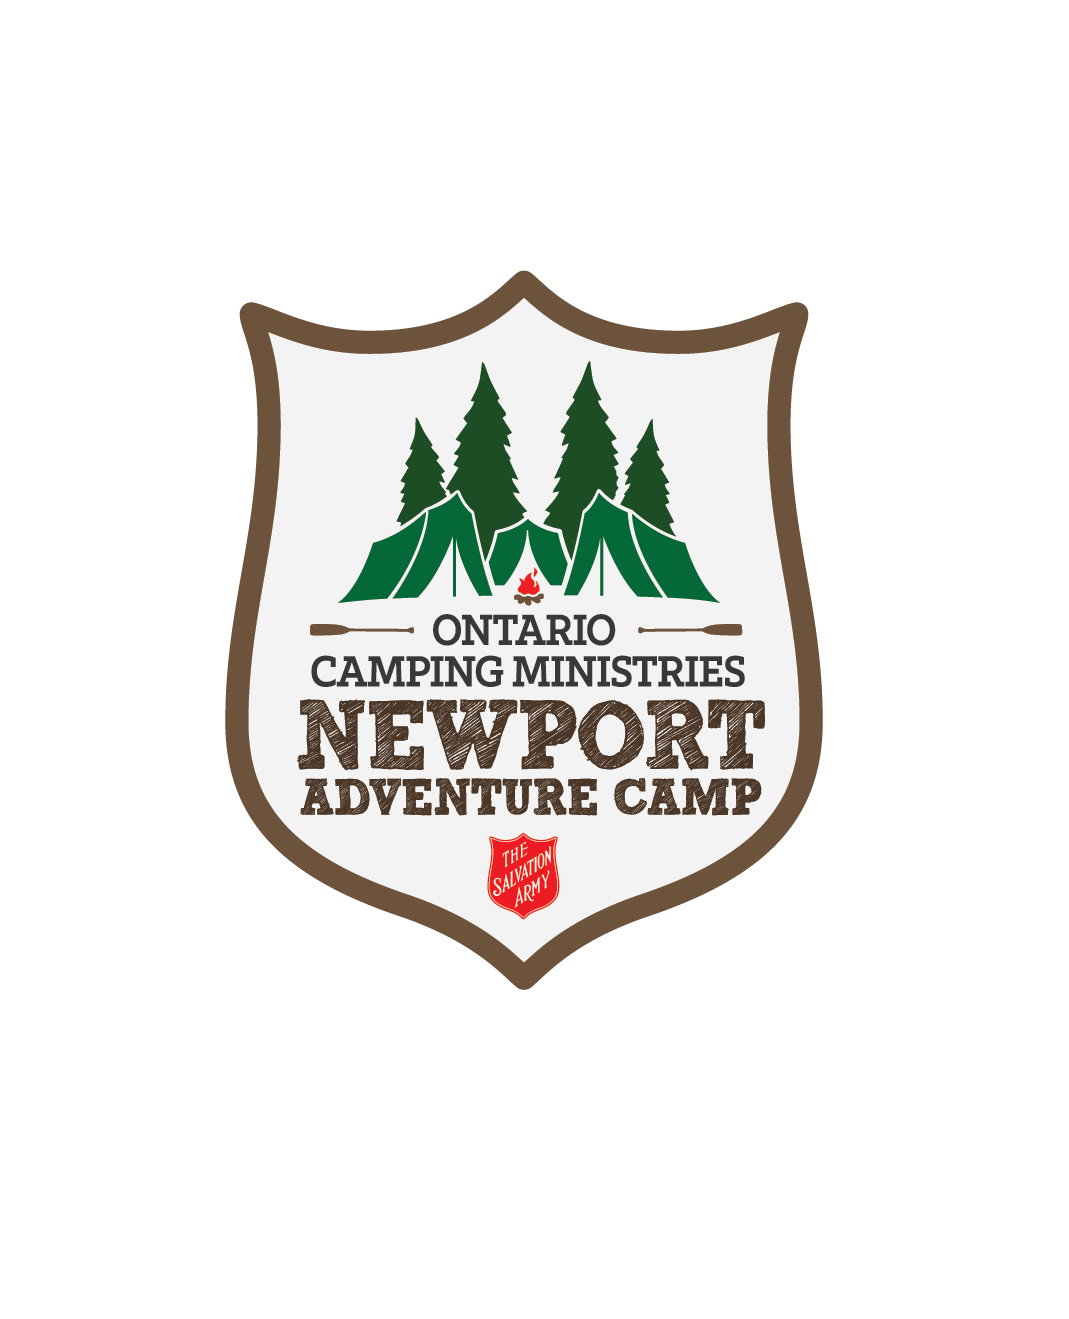 Salvation army crest png. Summer camps ontario camping